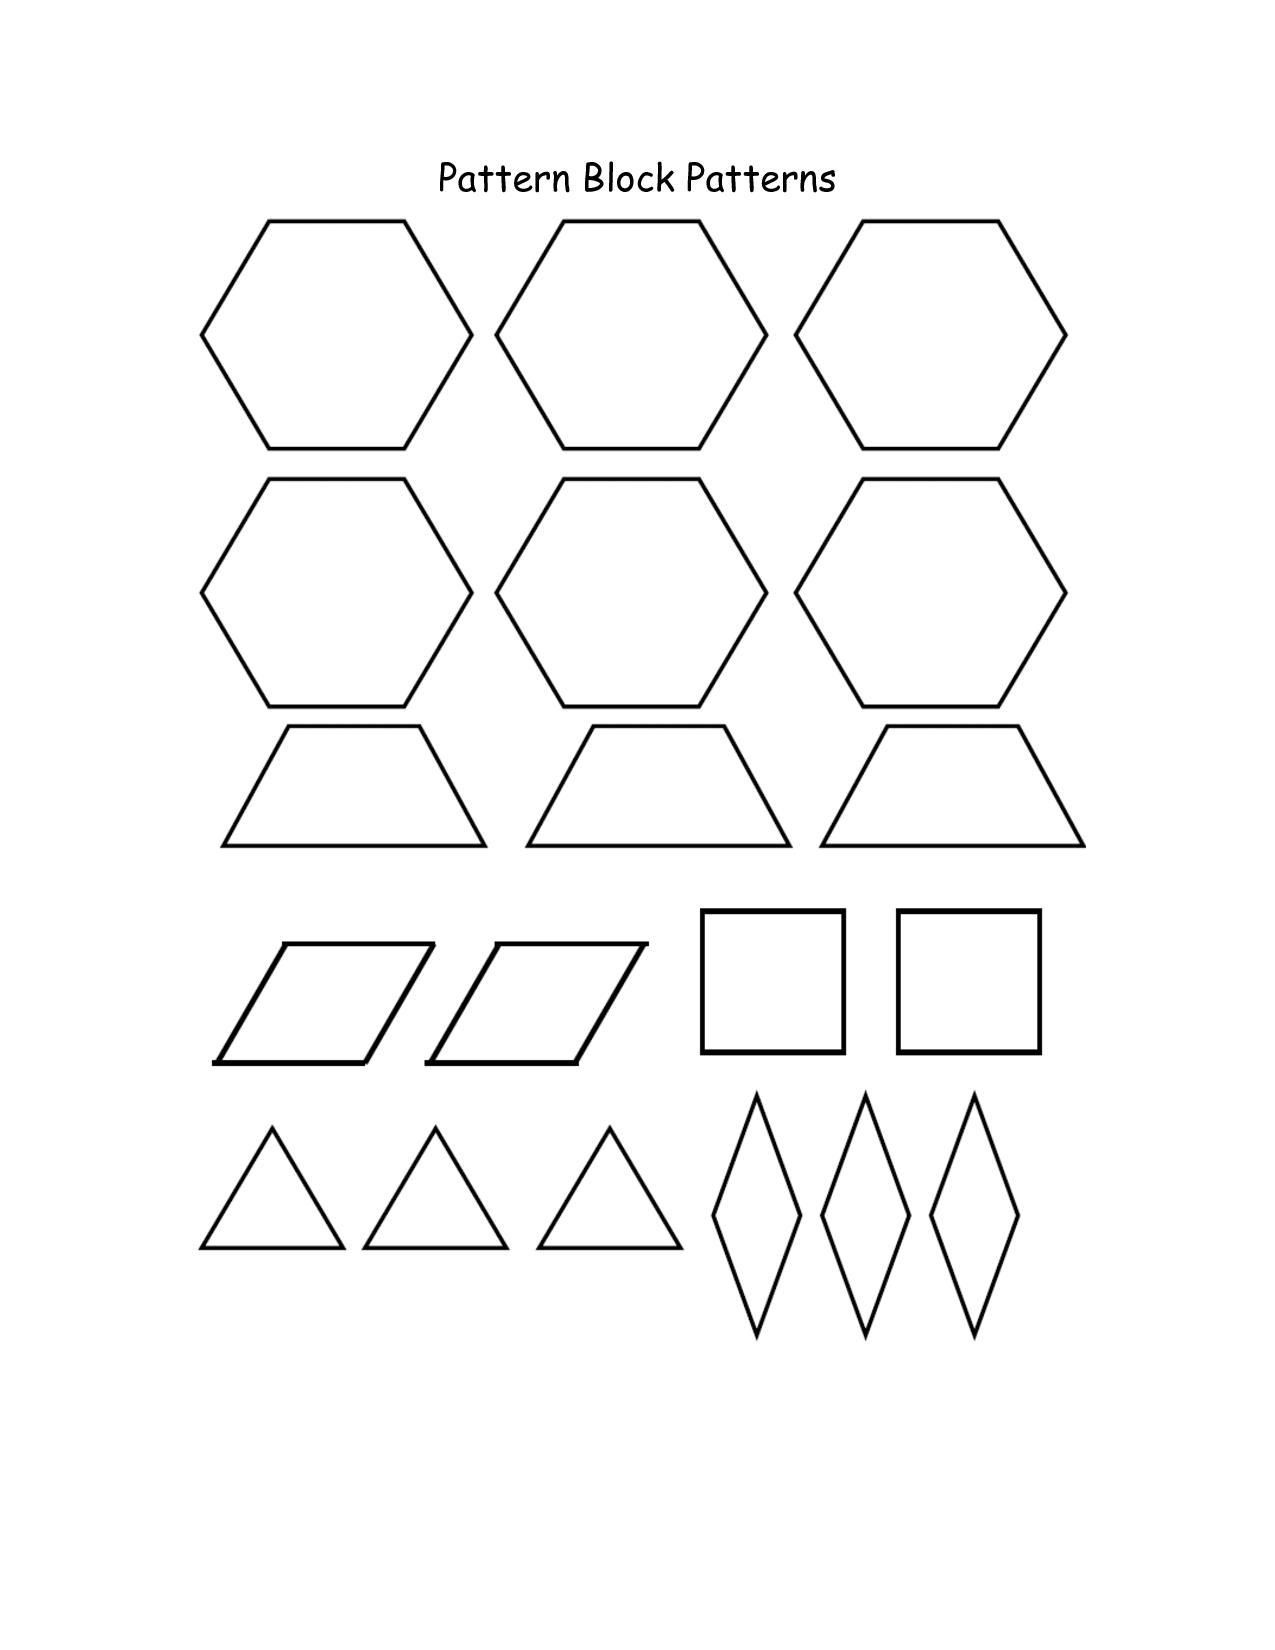 Pattern Block Blocks Coloring Printable Pages For Kids